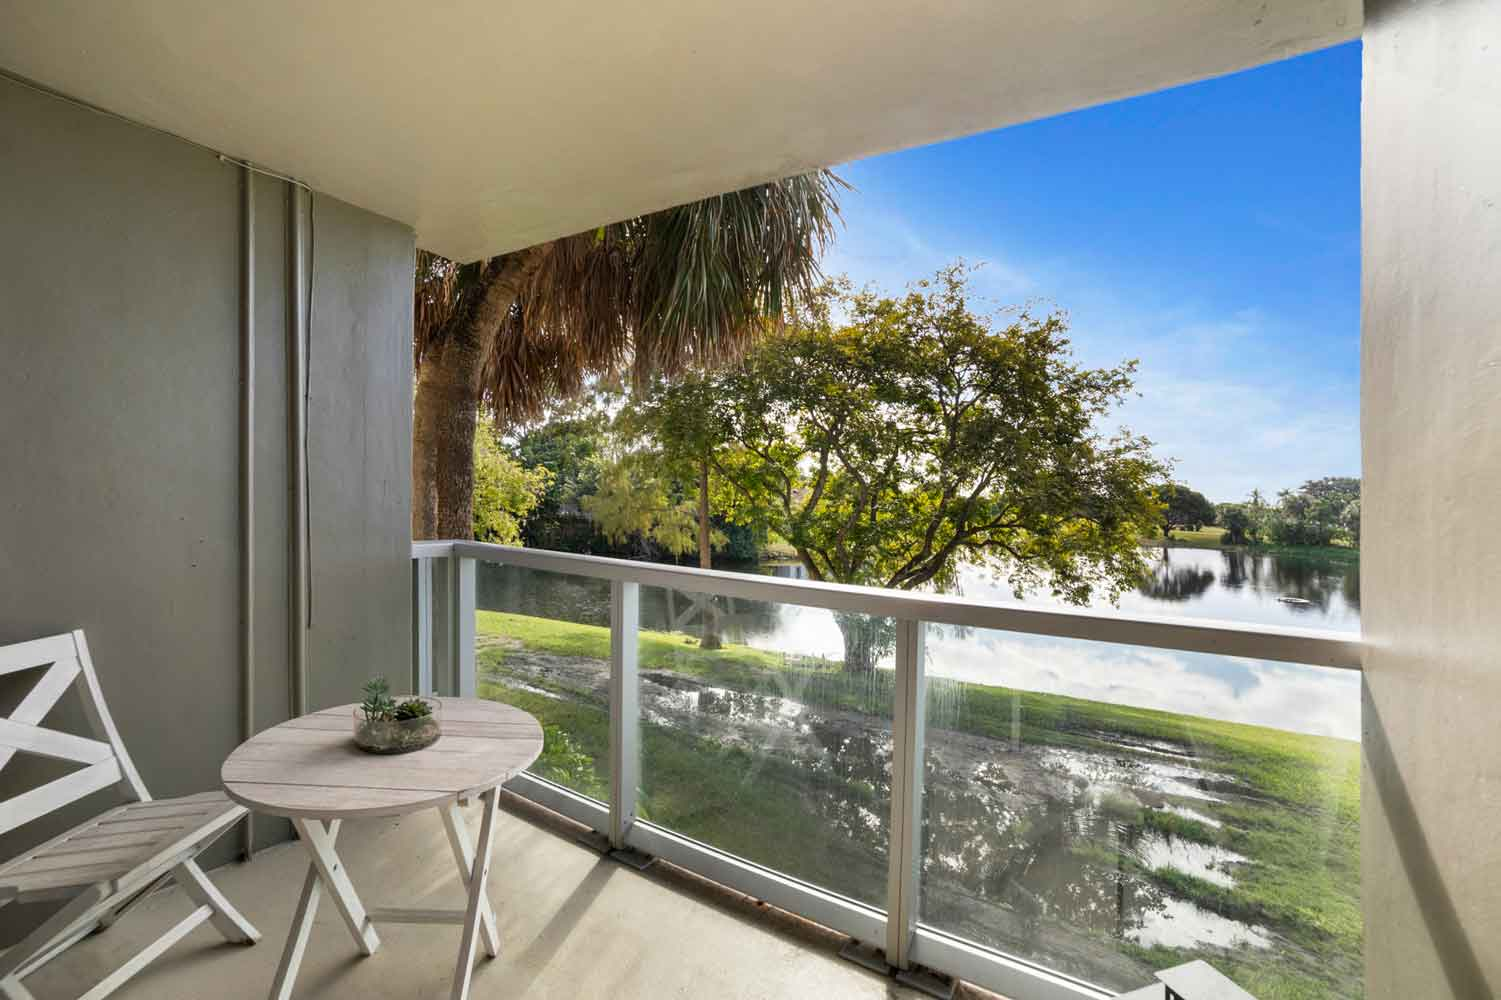 Private Patio with View at Nottingham Pine Apartments in Plantation, FL